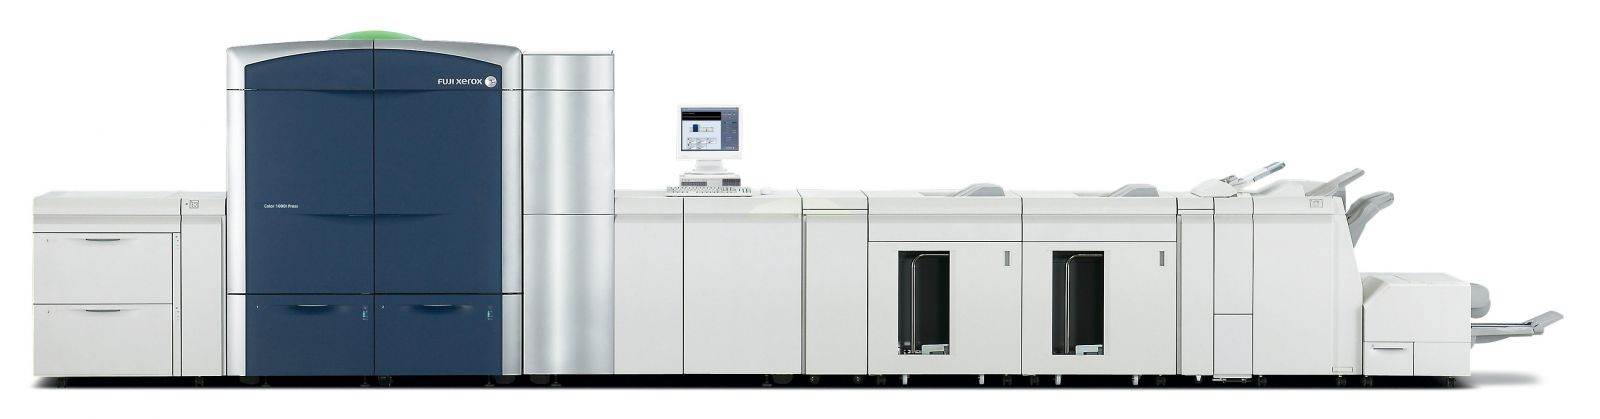 Fuji Xerox Color 1000i Press